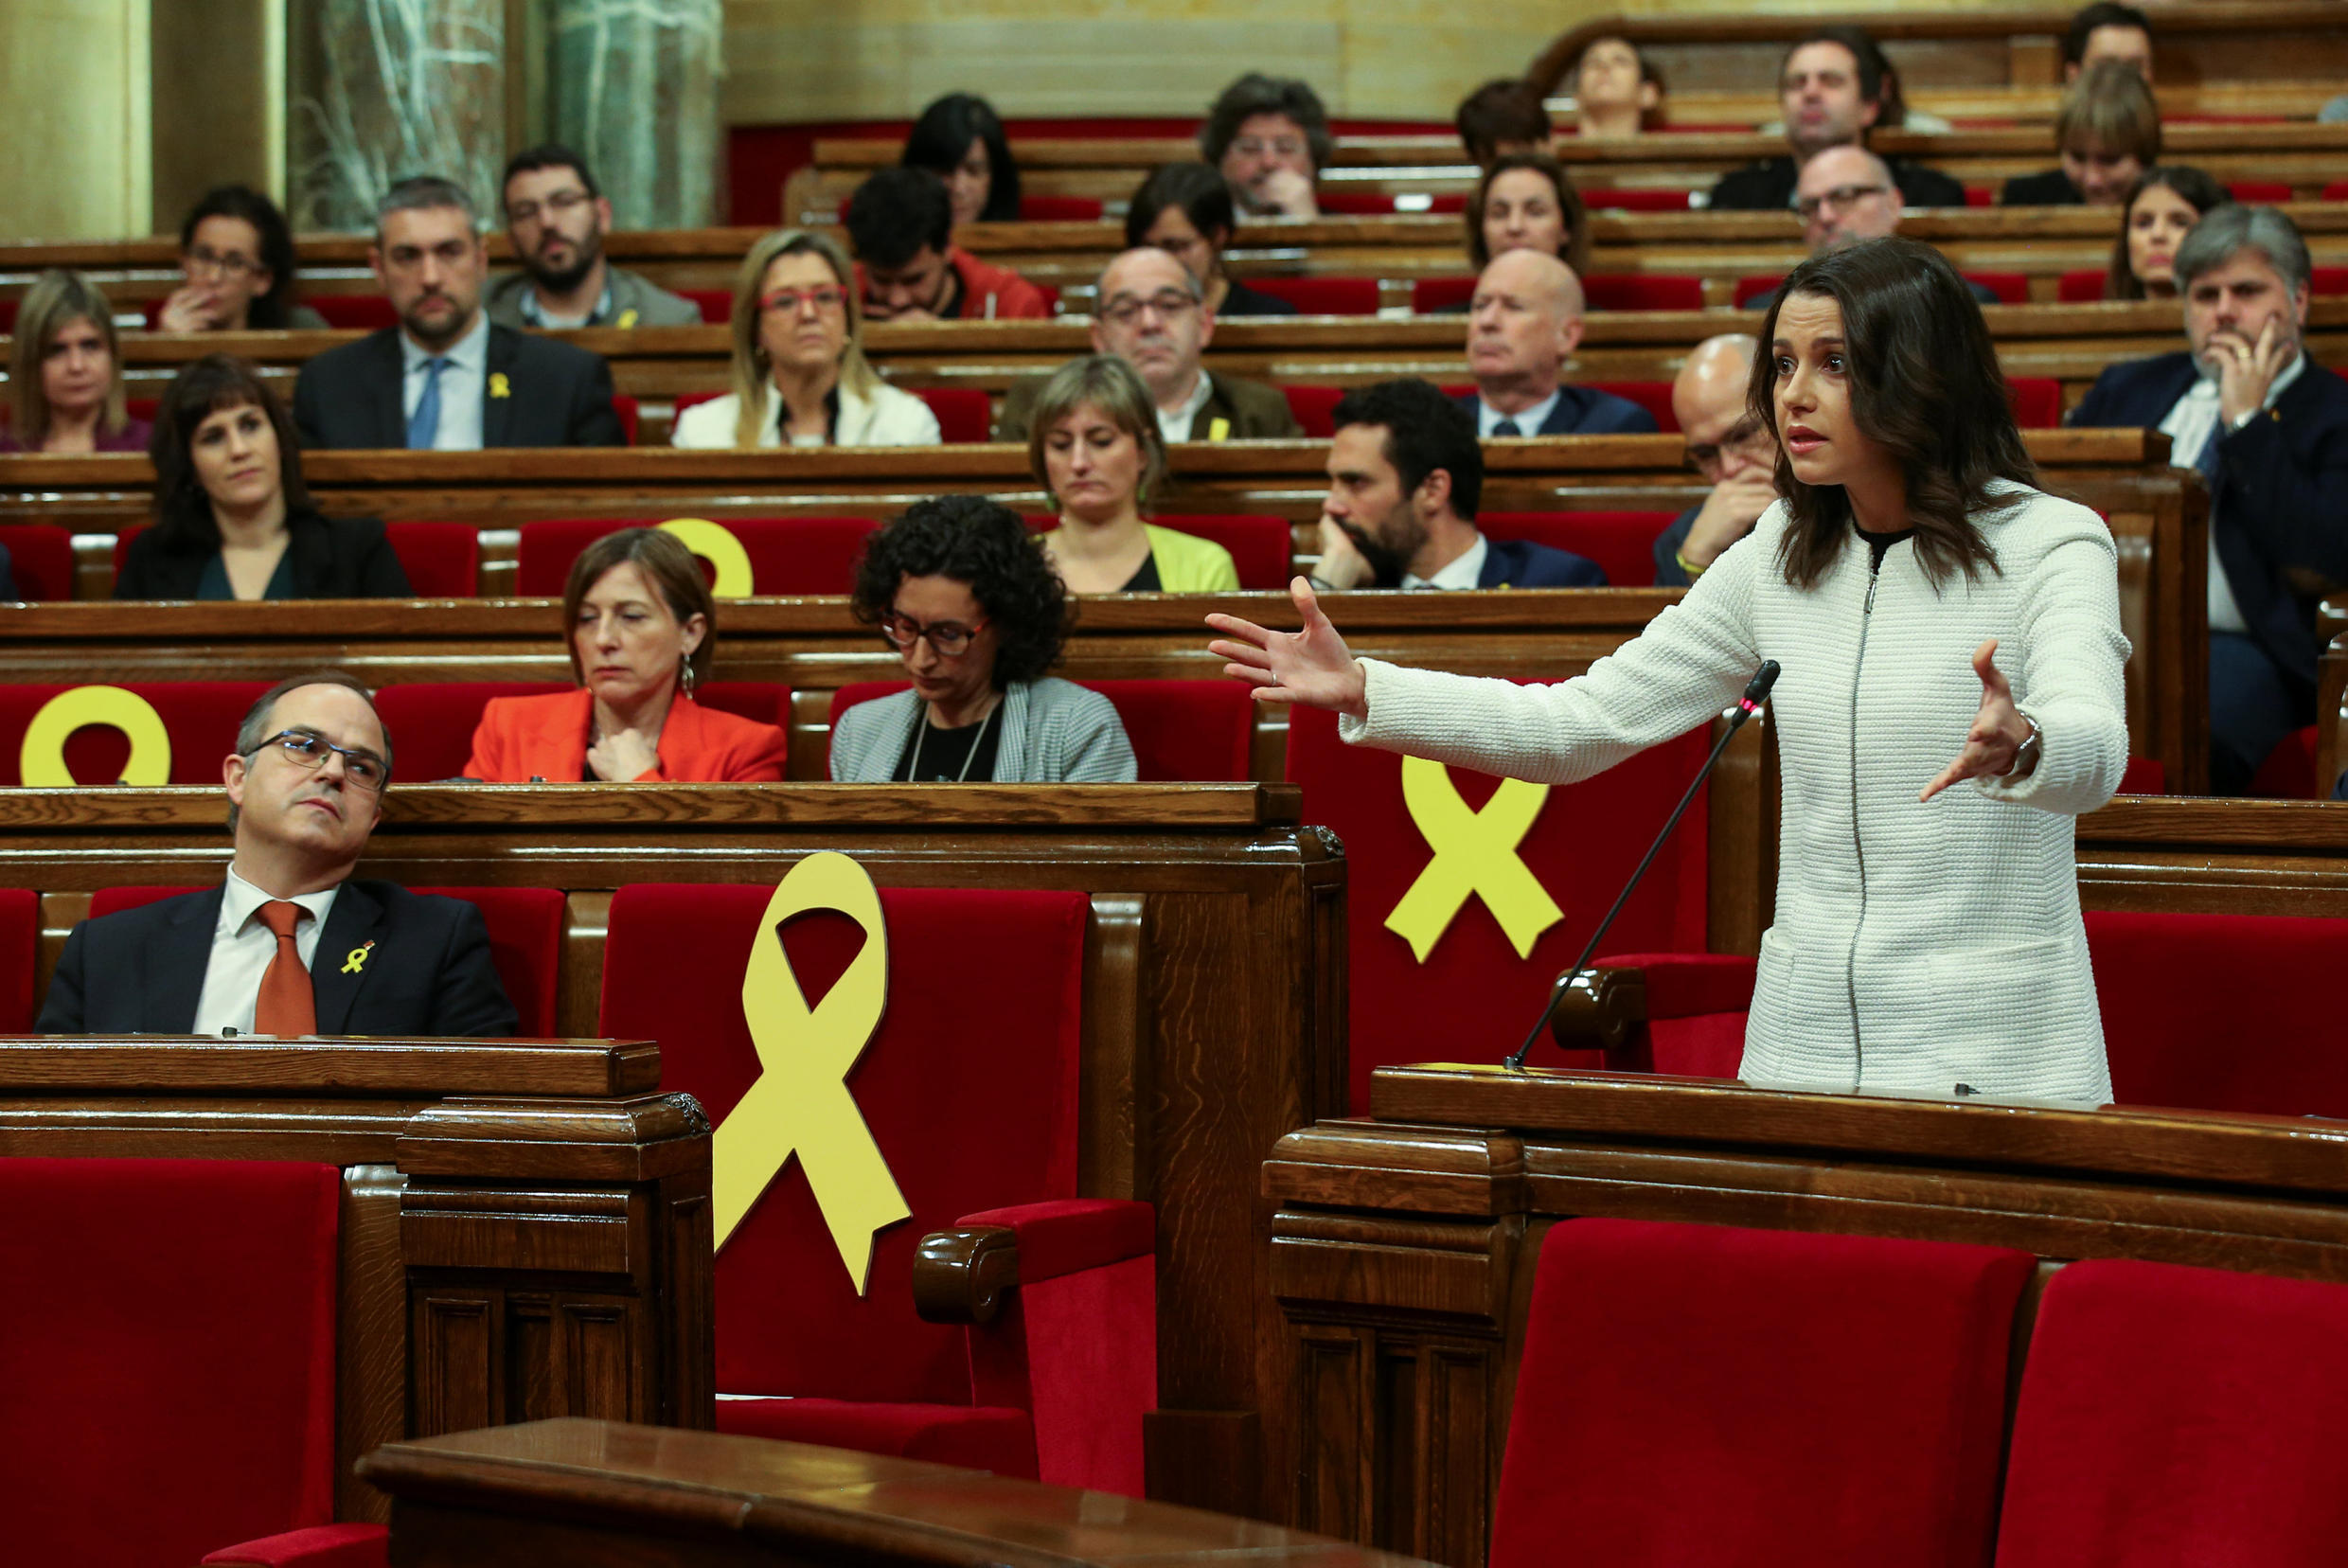 Newly-elected lawmakers meet on 18 January 2018 in the first session of Catalonia's parliament since pro-independence parties won a majority in December elections.